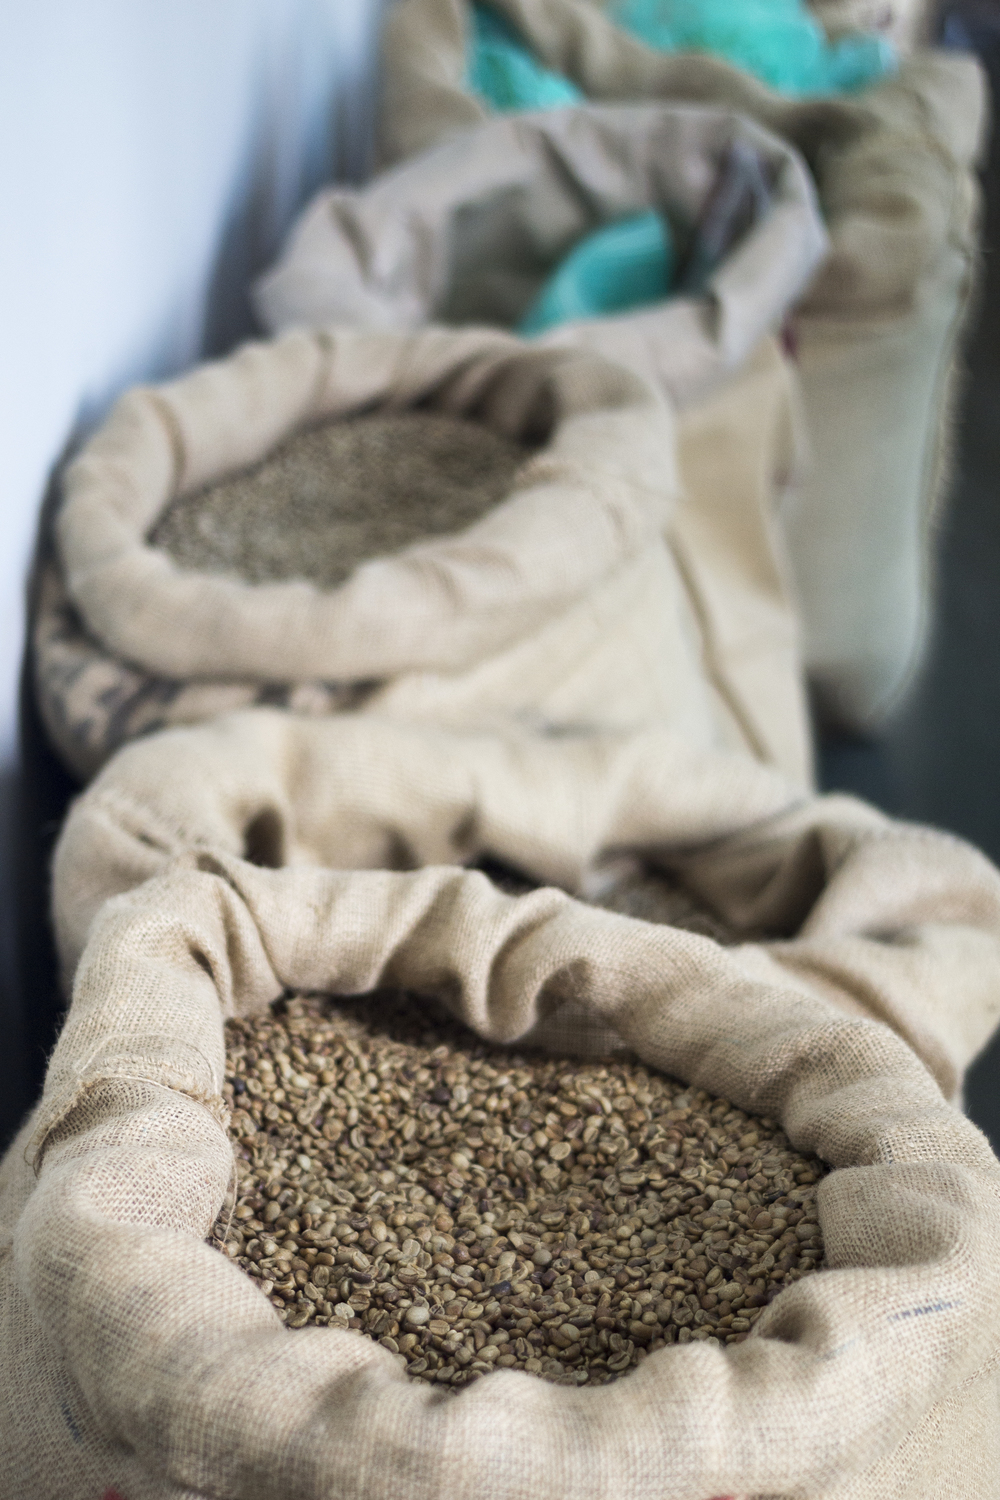 Our bags of green coffee at the shop waiting to be roasted